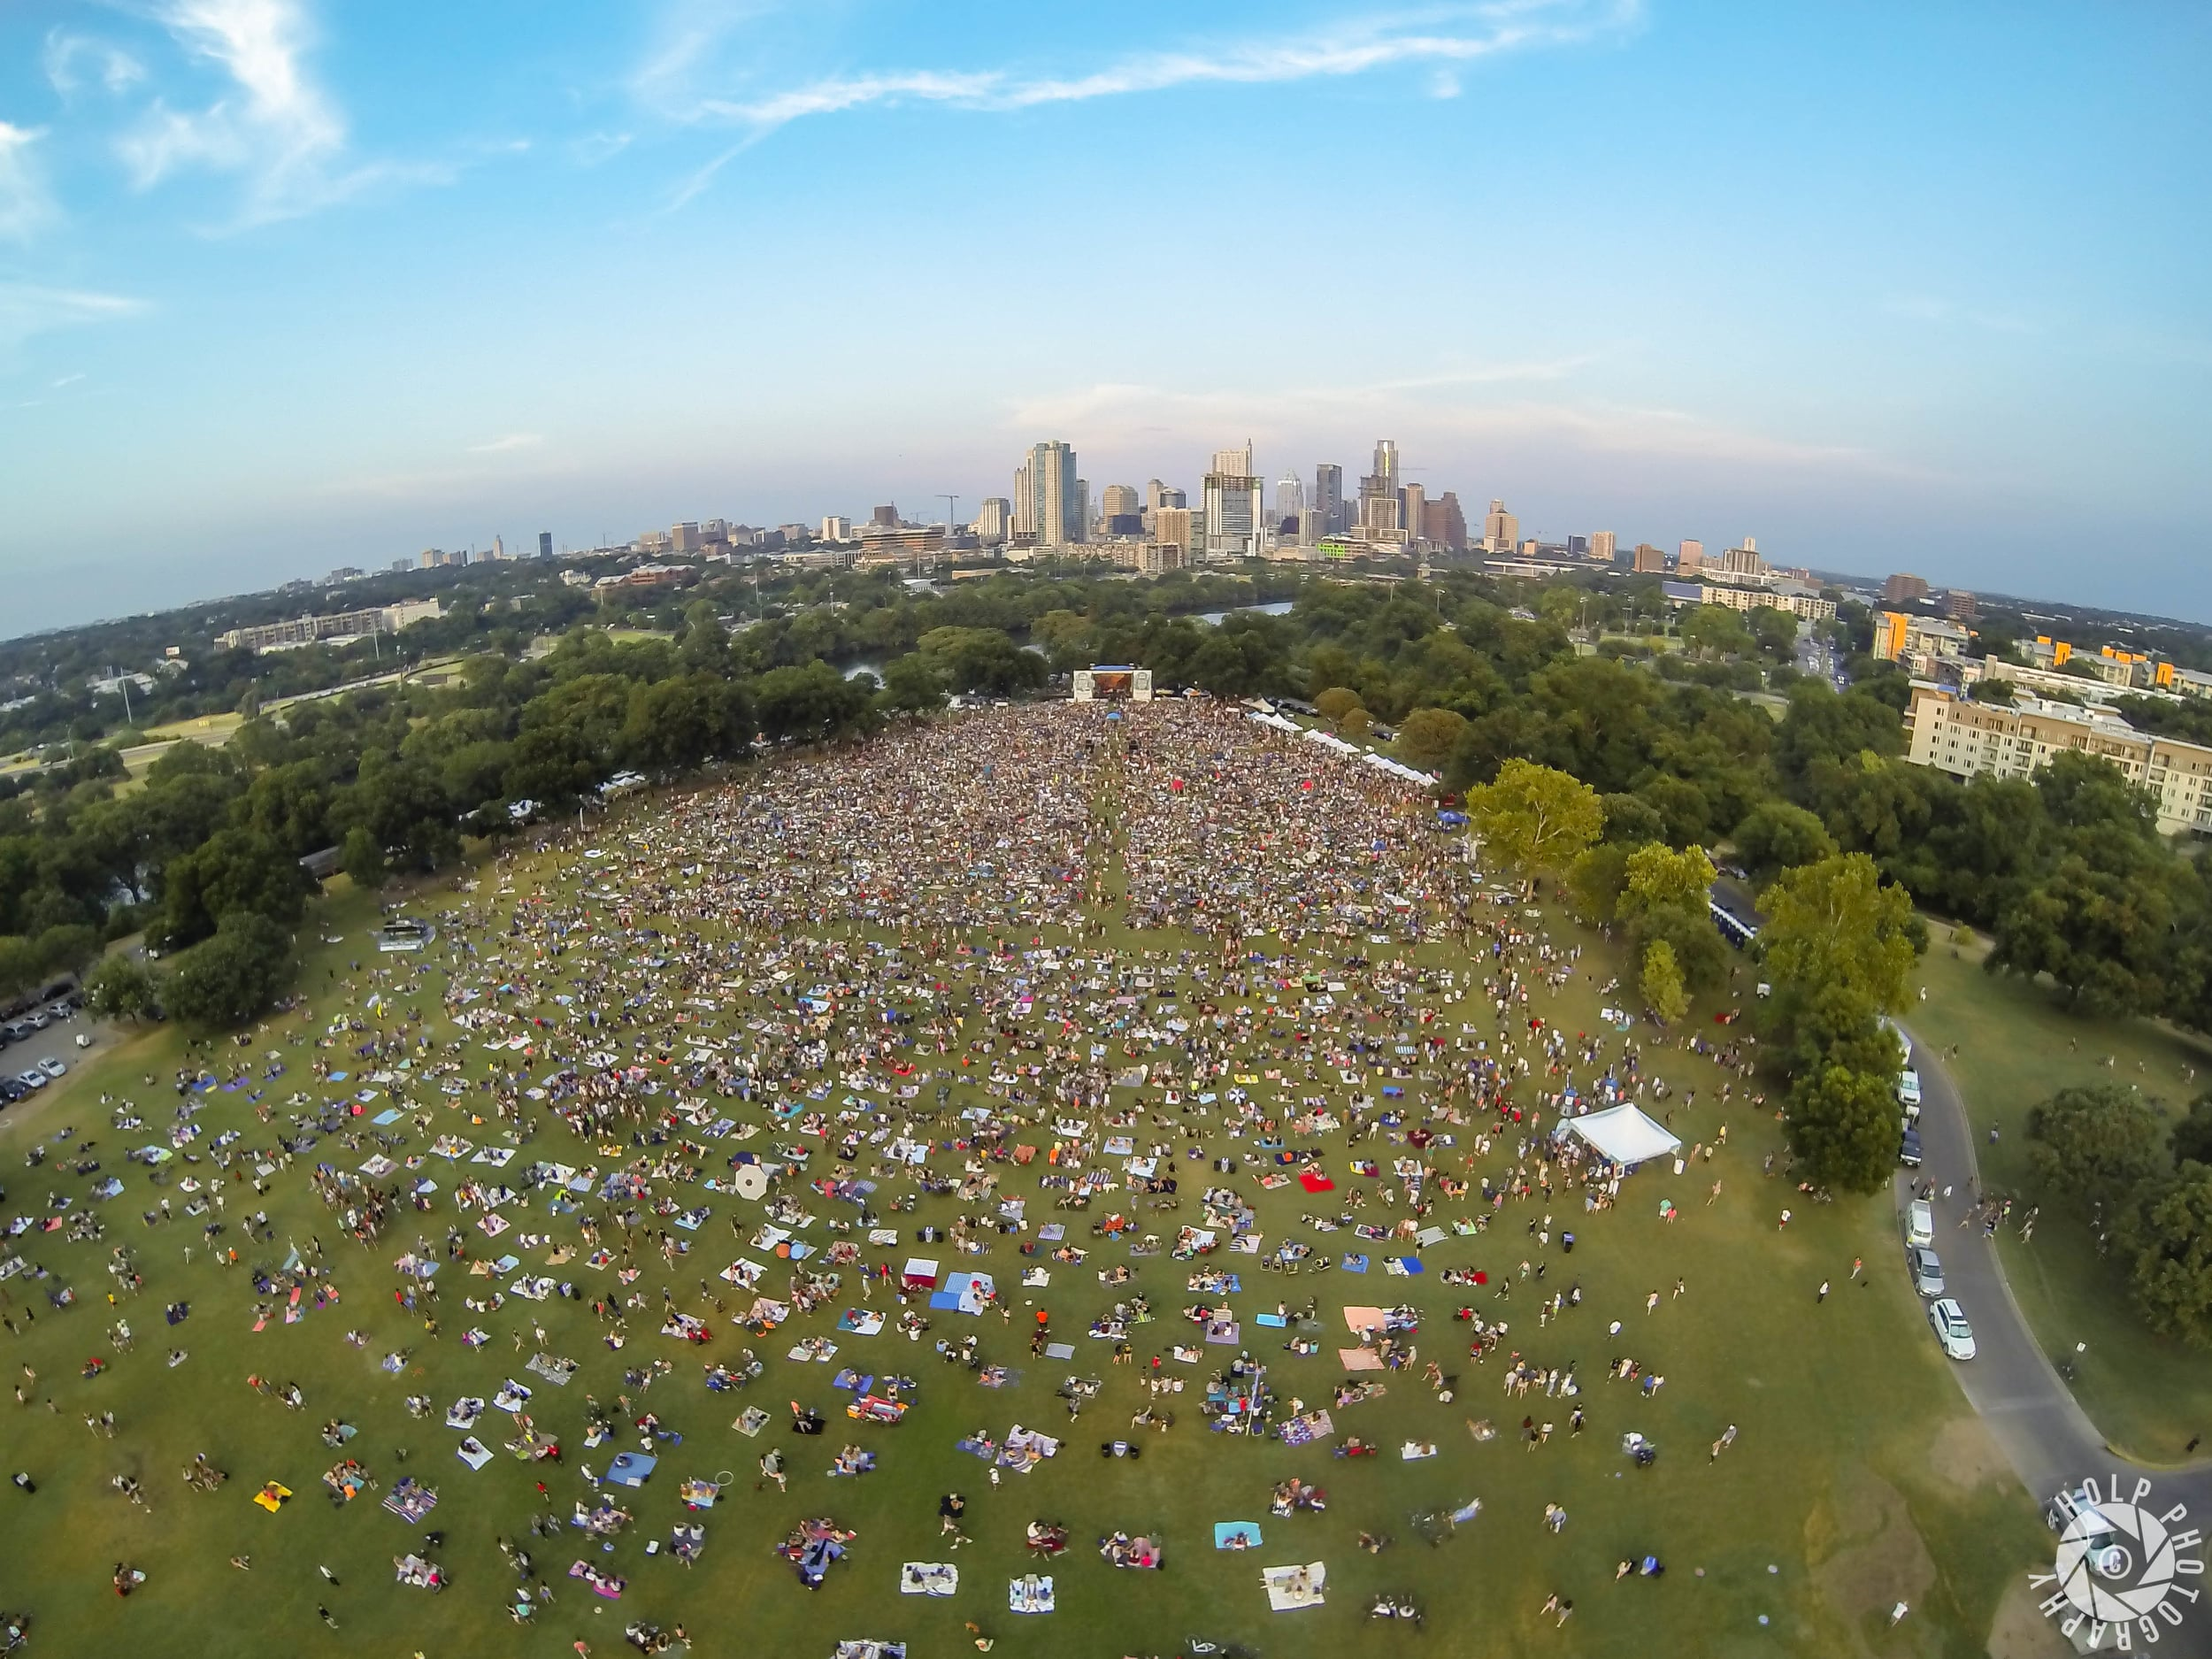 This photo was taken from a drone during Blues on the Green.